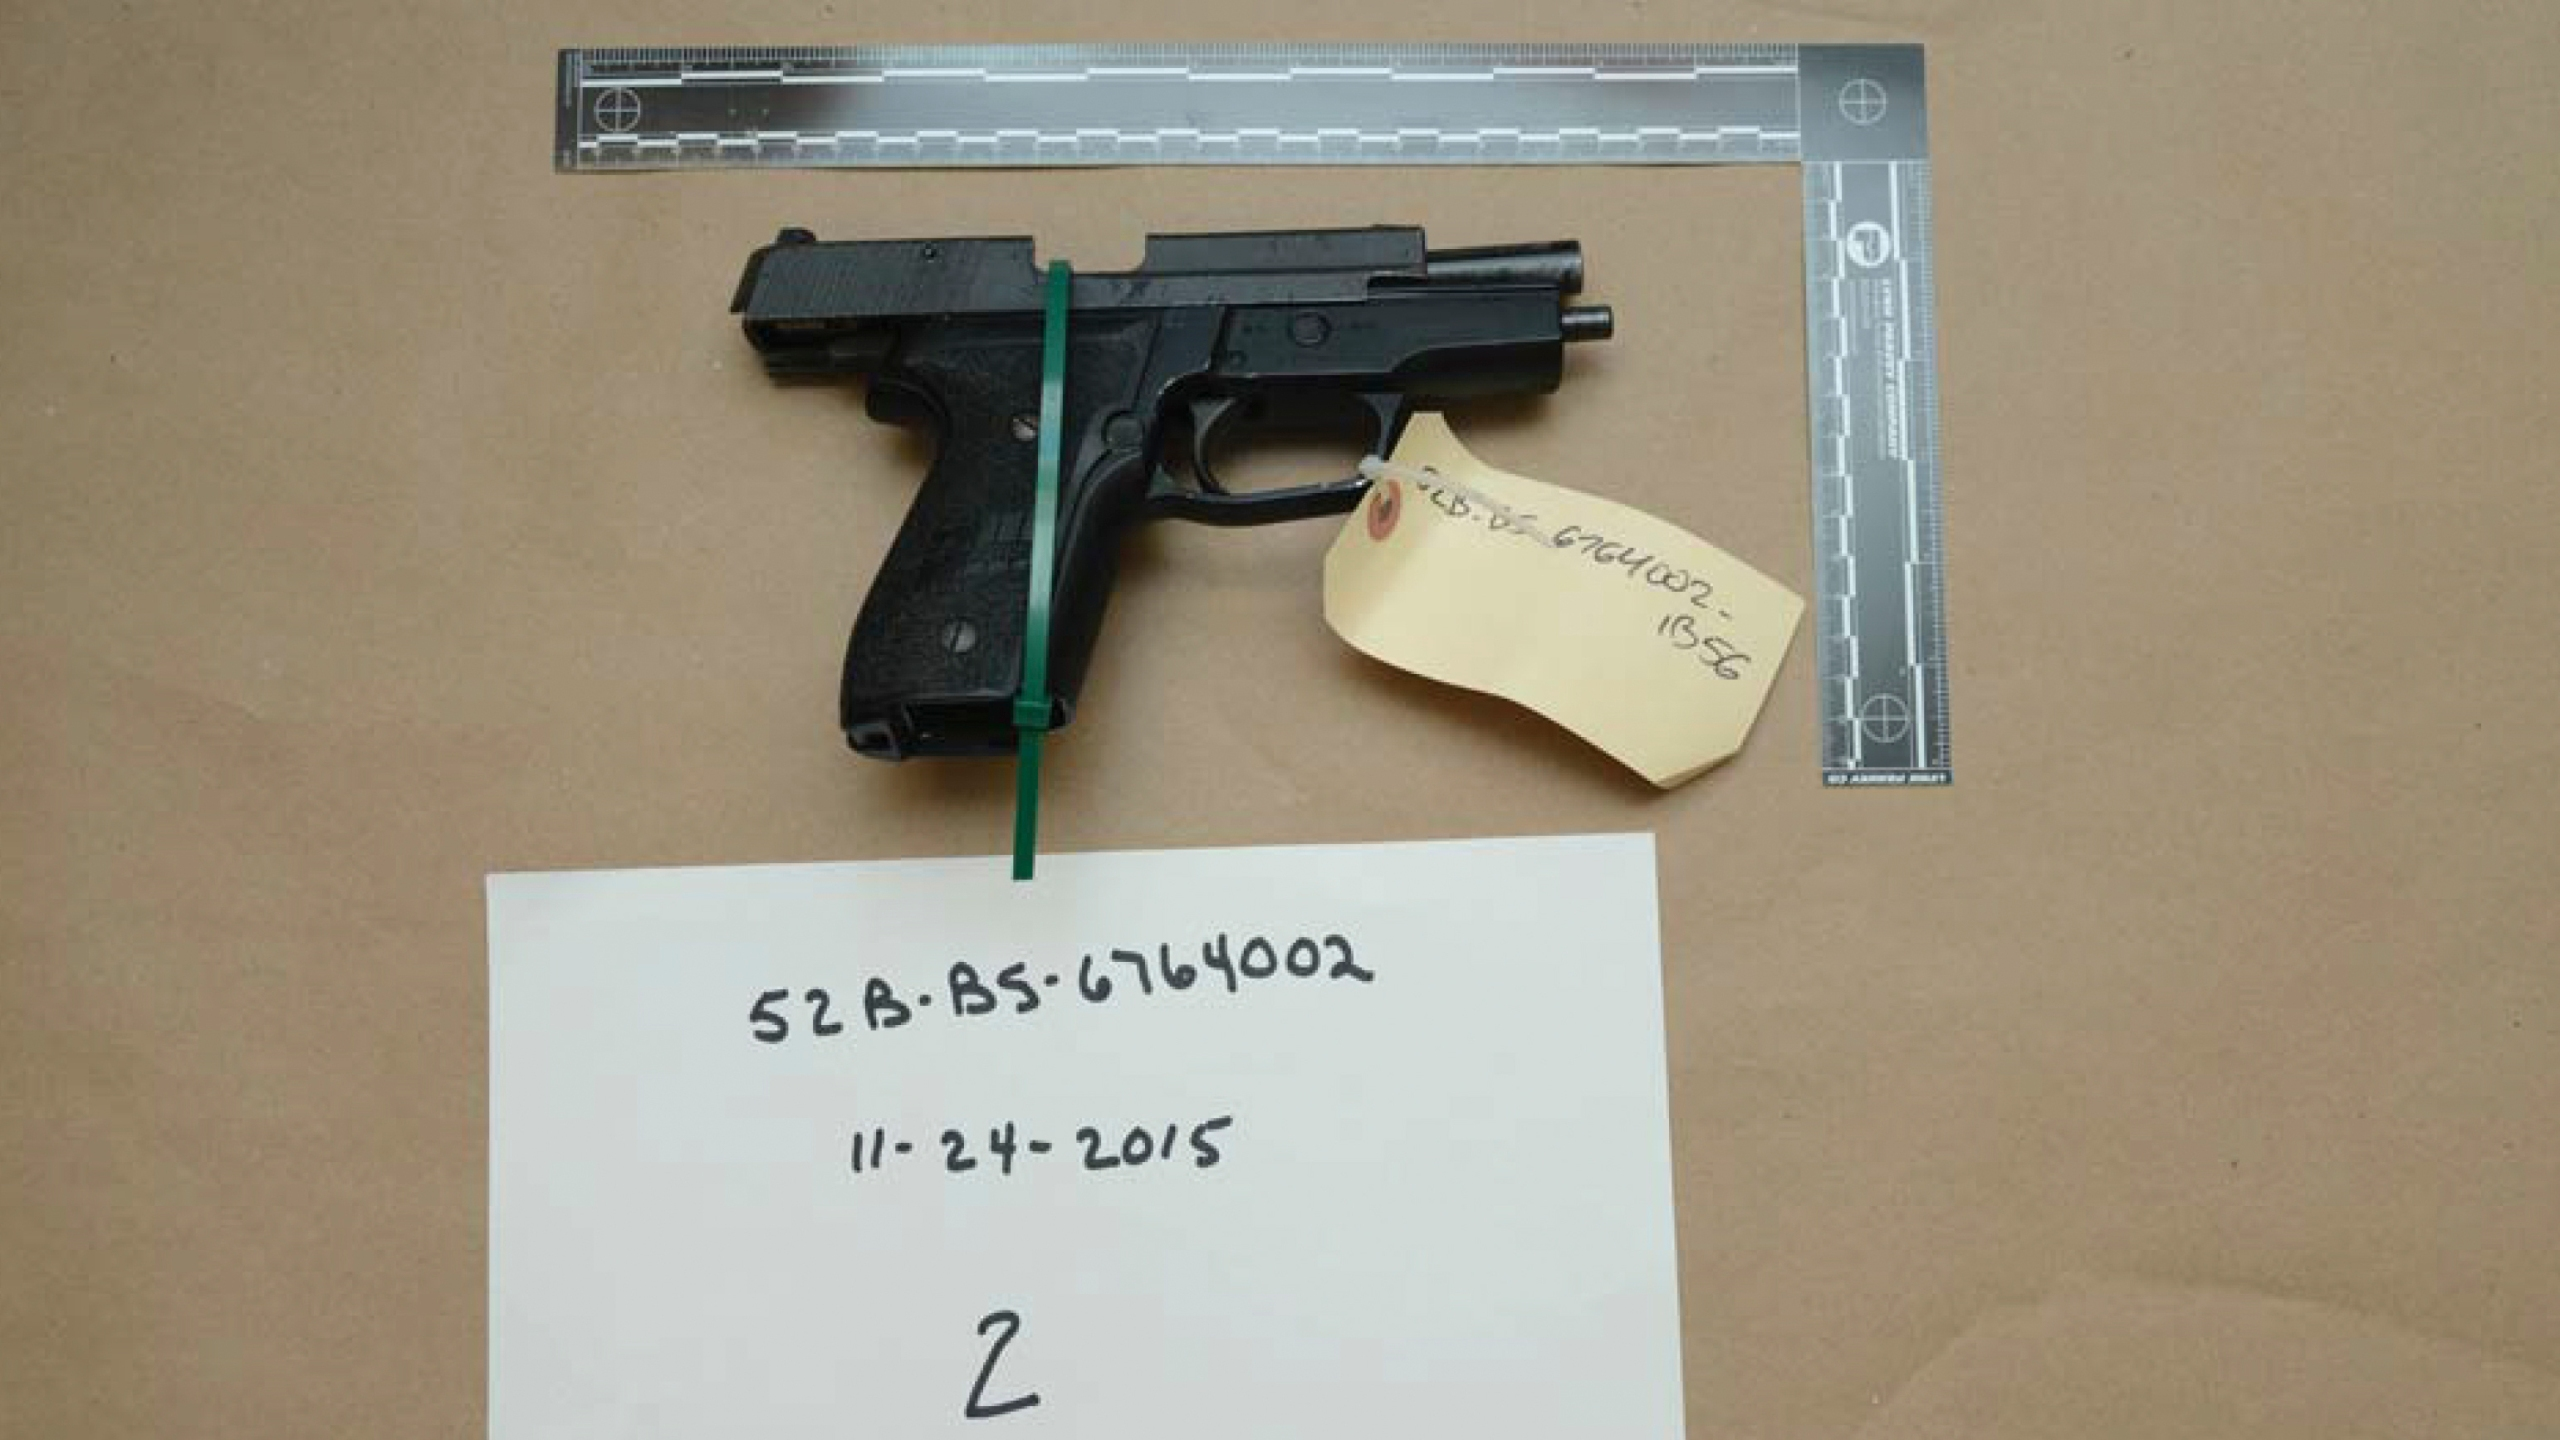 FILE - This evidence photo from the criminal complaint of the U.S. District Court for Massachusetts v. Ashley Bigsbee for illegal possession of a stolen firearm on Nov. 15, 2015, in Suffolk, Mass., shows one of ten M11 semiautomatic handguns that former Army Reserve member James Morales stole from the Lincoln Stoddard Army Reserve Center in Worcester, Mass. Overall, AP has found that at least 2,000 firearms from the Army, Marines, Navy or Air Force were lost or stolen during the 2010s. (U.S. District Court for Massachusetts via AP)